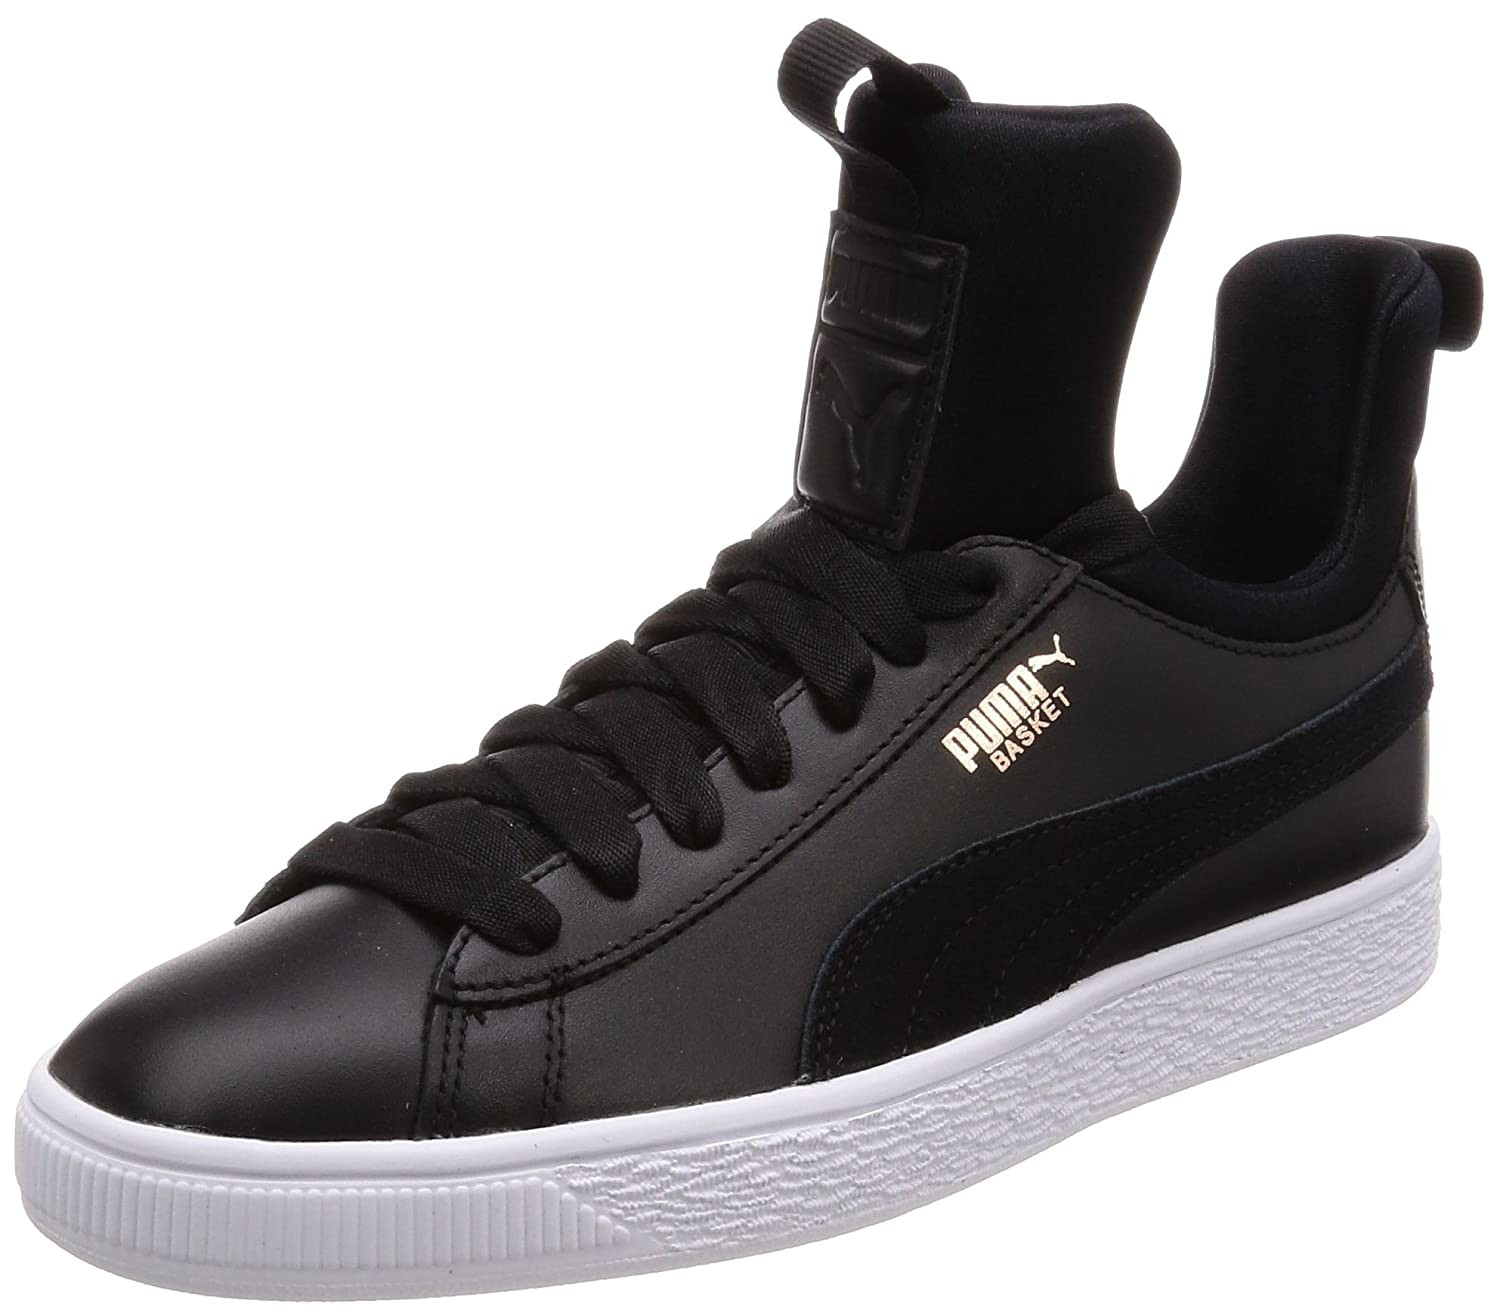 3dc6b457618c83 Puma Basket Fierce Trainers Black  Amazon.co.uk  Shoes   Bags